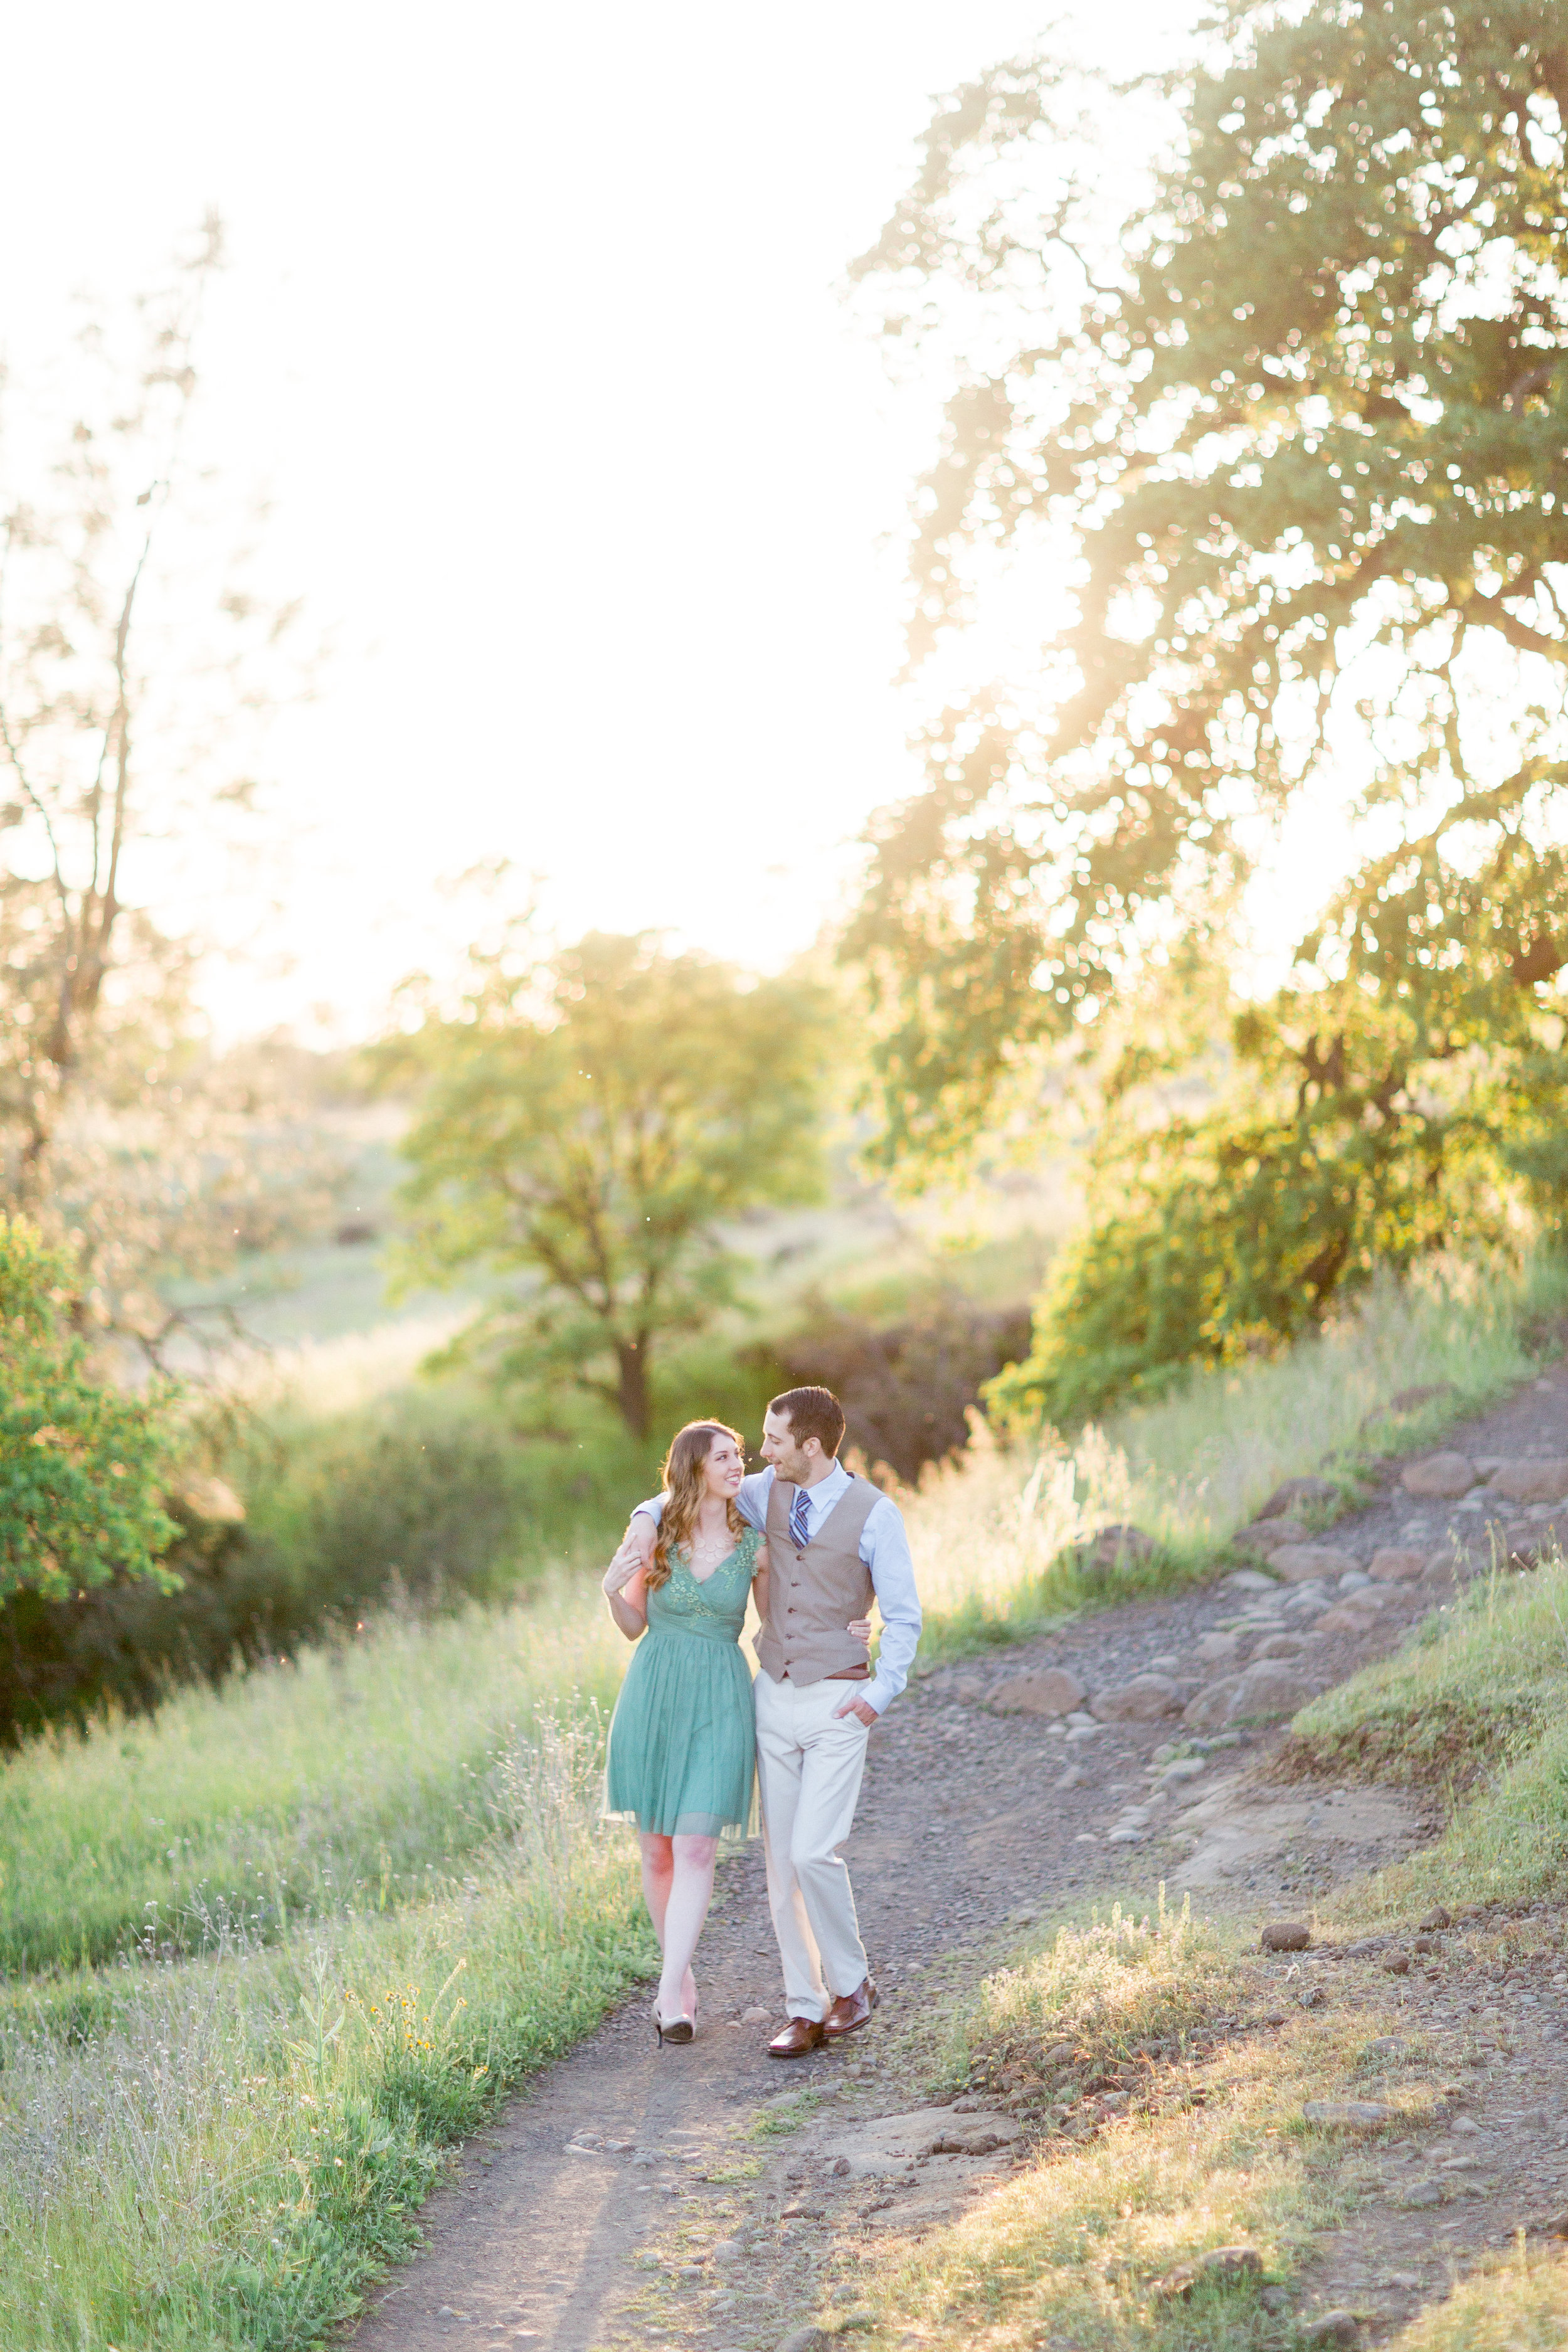 upper-bidwell-chico-california-engagement-session-trebrittany-120.jpg